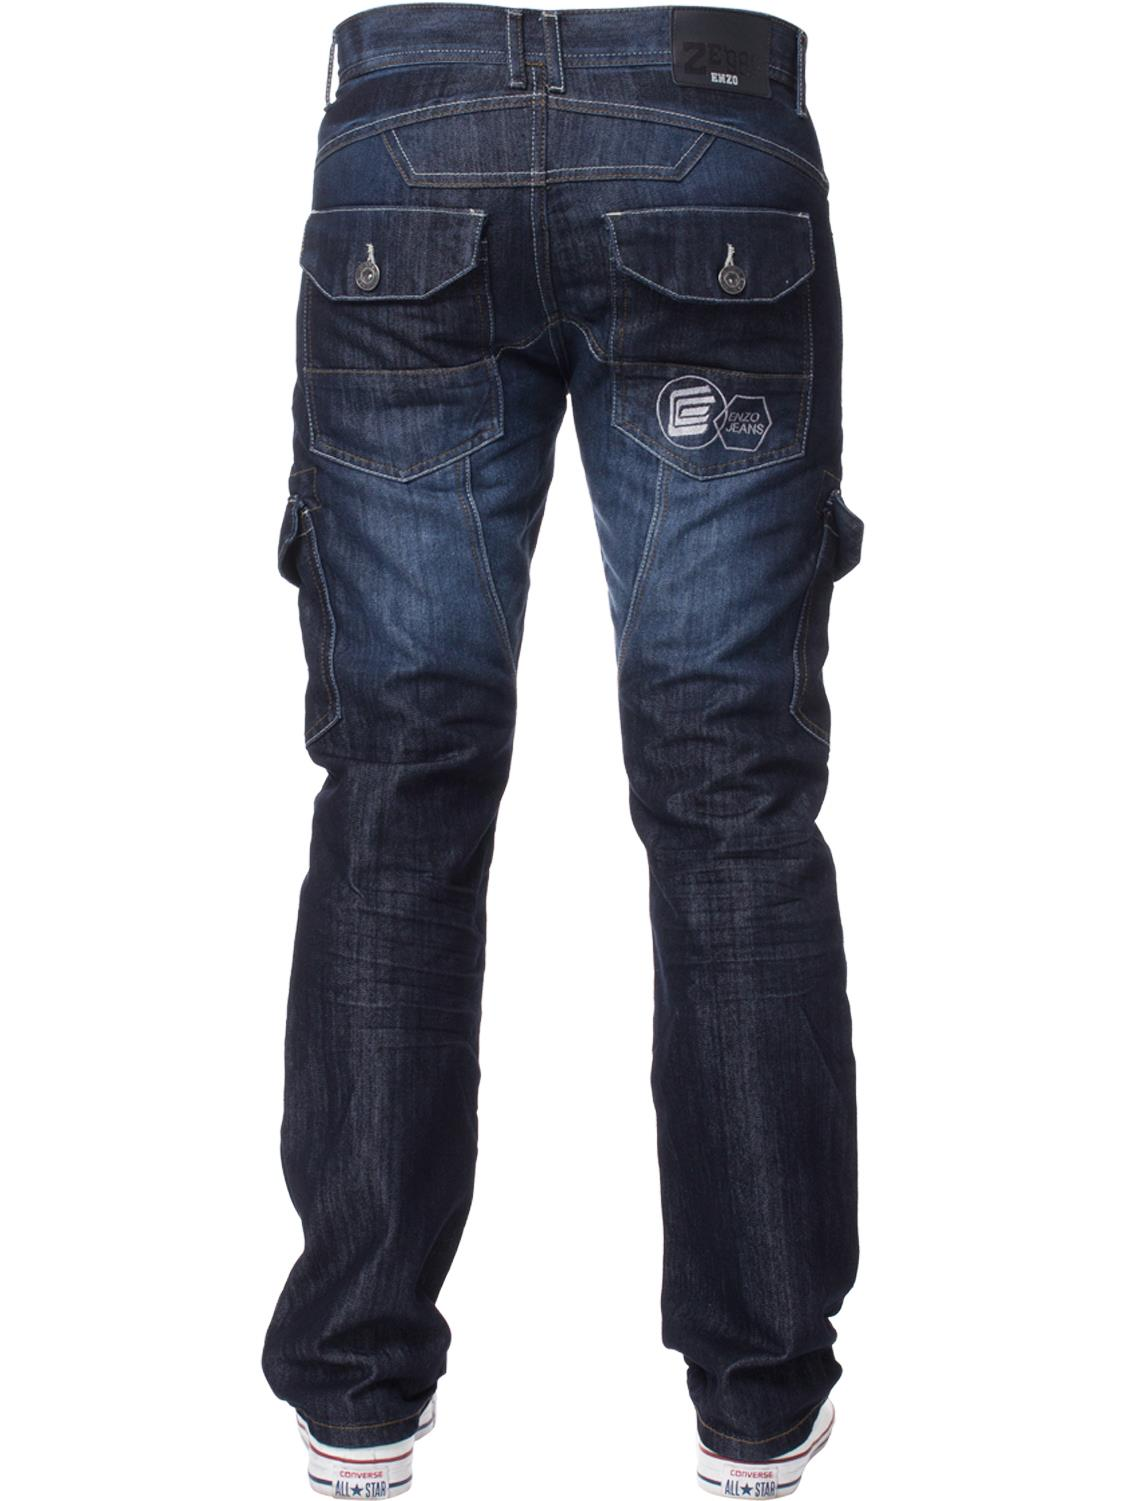 Enzo-Mens-Jeans-Big-Tall-Leg-King-Size-Denim-Pants-Chino-Trousers-Waist-44-034-60-034 miniature 81